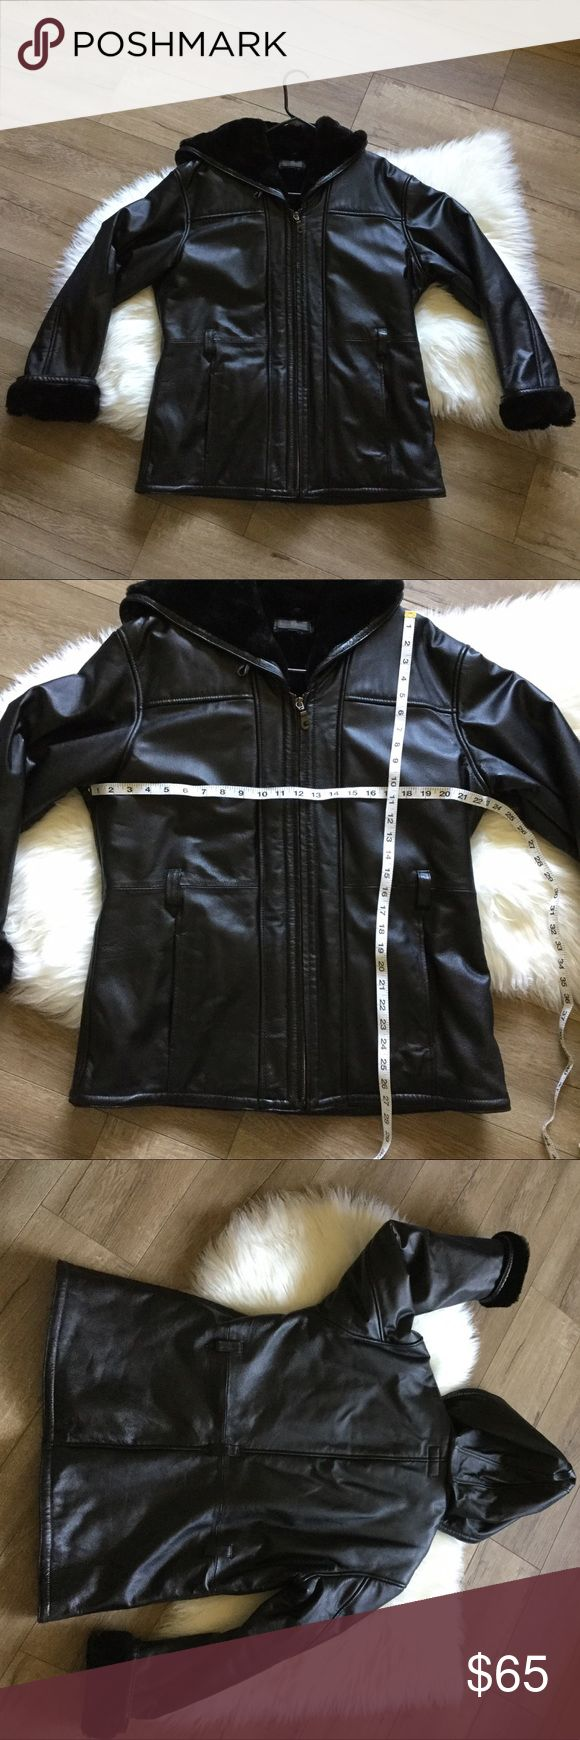 Wilsons Black hooded leather jacket fux fur lining Genuine leather jacket from Wilson Leather. Size L, with additional measurements available in photos. Has faux fur lining inside whole jacket and even has a hood. Great condition no scuffs, scratches or cracks. Only flaw it's missing the belt, other than that it's great! Save 20% when bundled with any other item available in @teashopkids or @teashop. Wilsons Leather Jackets & Coats